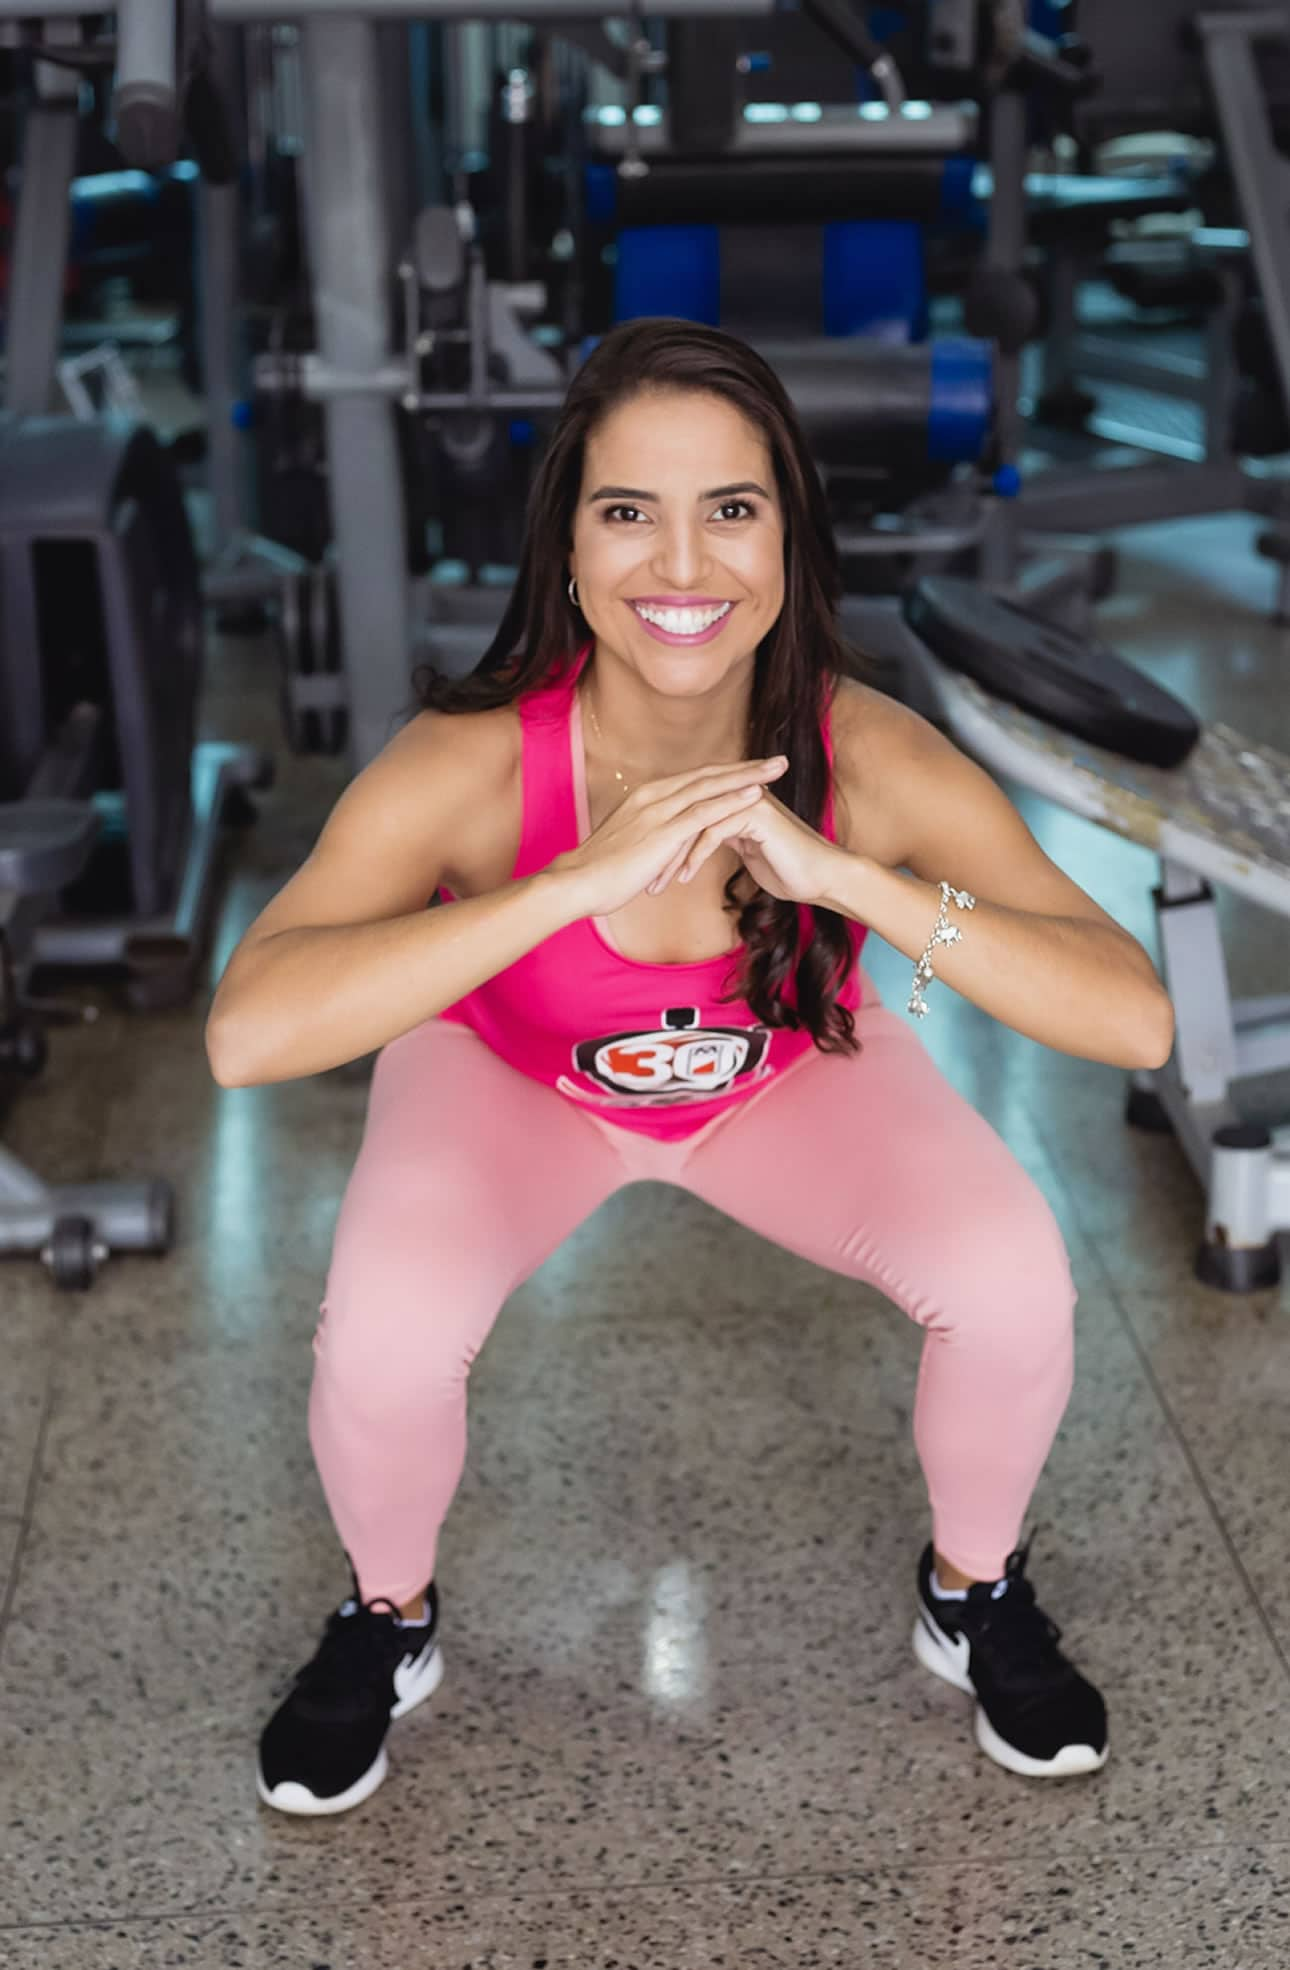 23 09 20 personal trainer pinheirense 8